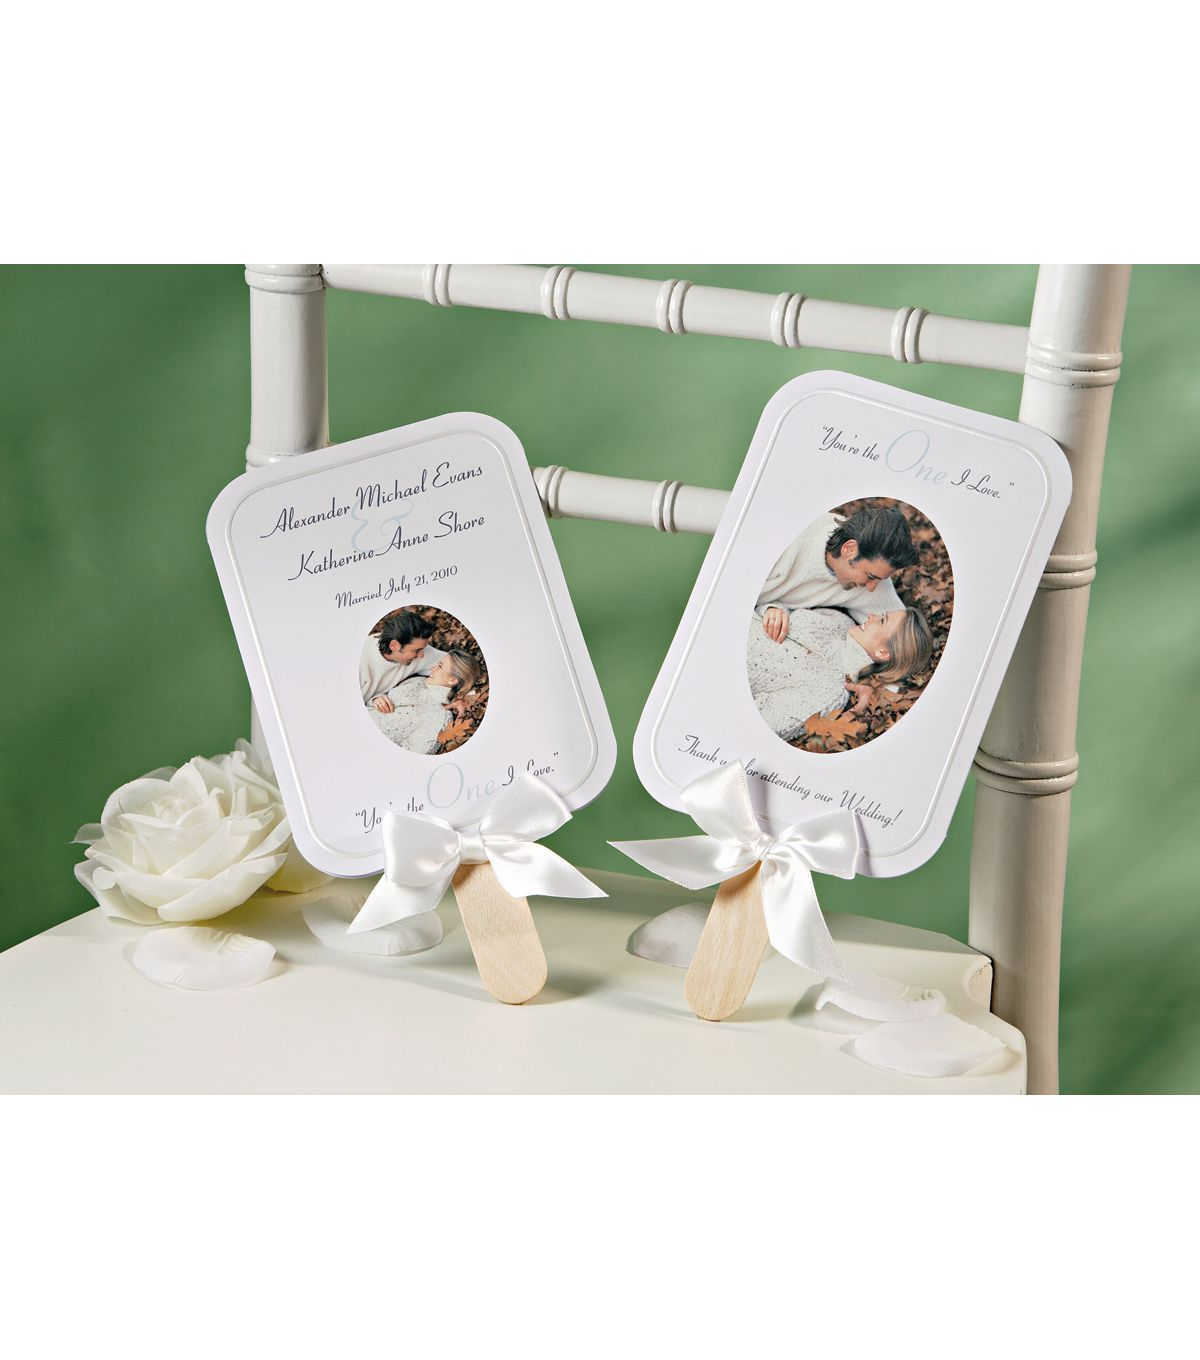 Make Your Own Wedding Favor Ideas: Wilton 24pk Print Your Own Fan Kit